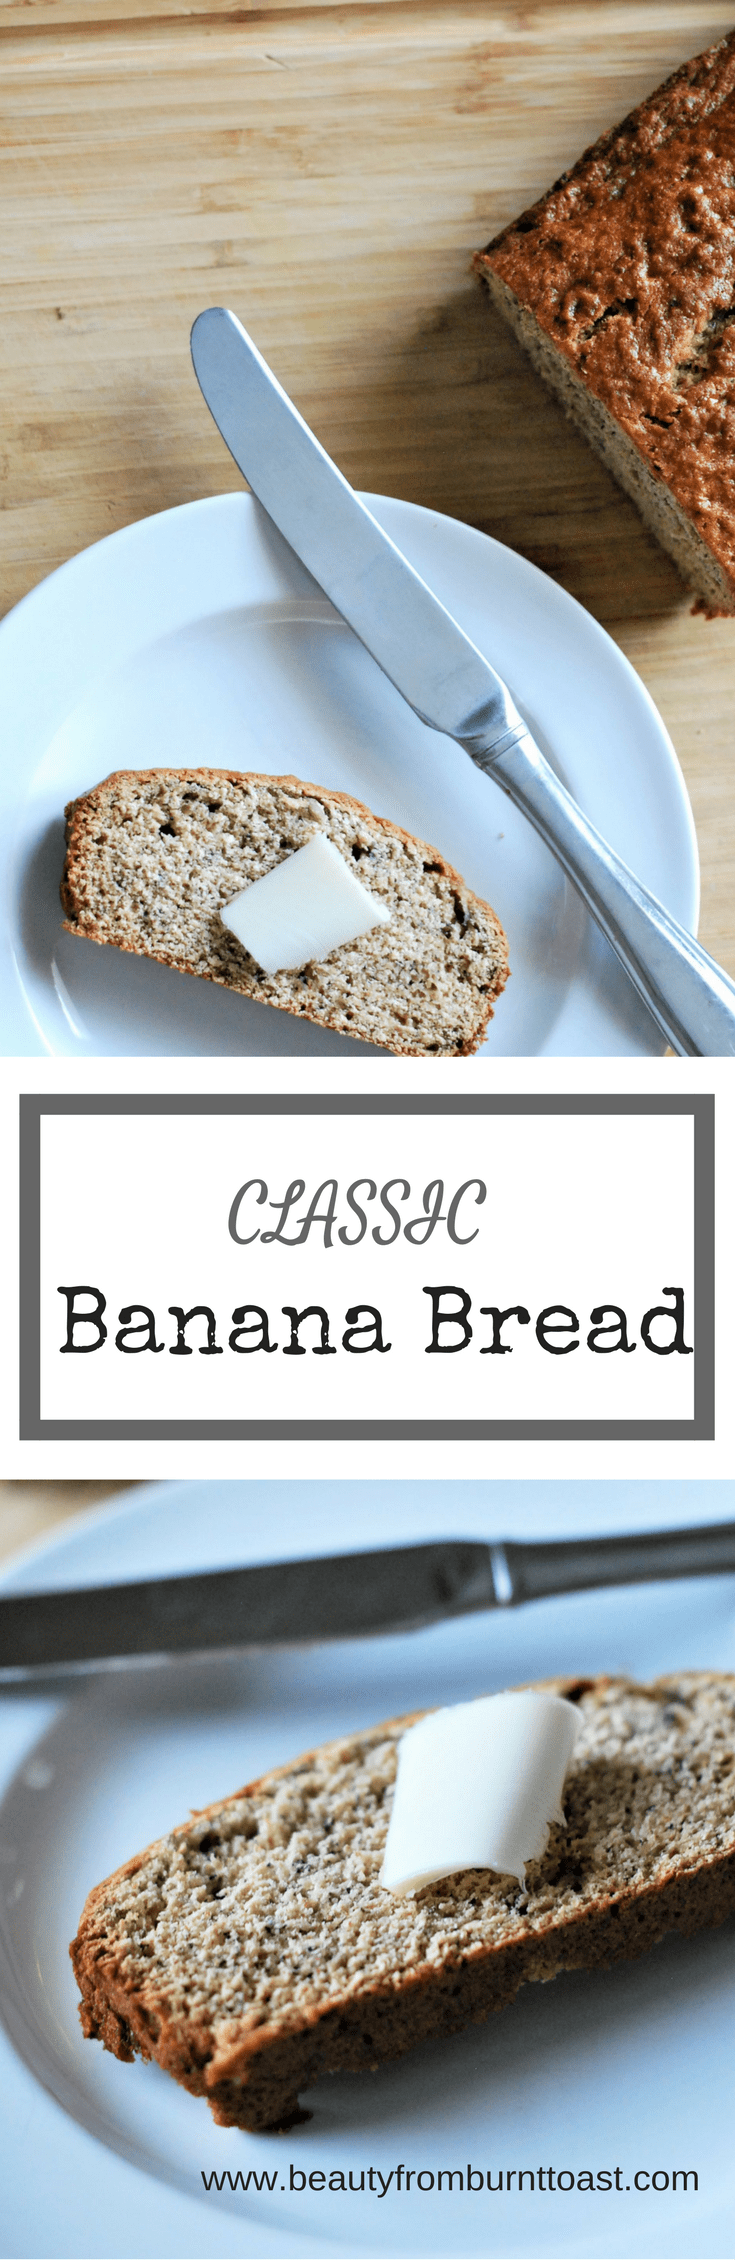 Everyone loves banana bread. This simple recipe can be made thrown together in 1 minutes, using one bowl and the result is a delicious, healthy and moist banana bread that your whole family will love. Healthy additions of coconut oil and whole wheat flour make this a healthy adaptation of a classic that you can feel good about serving!